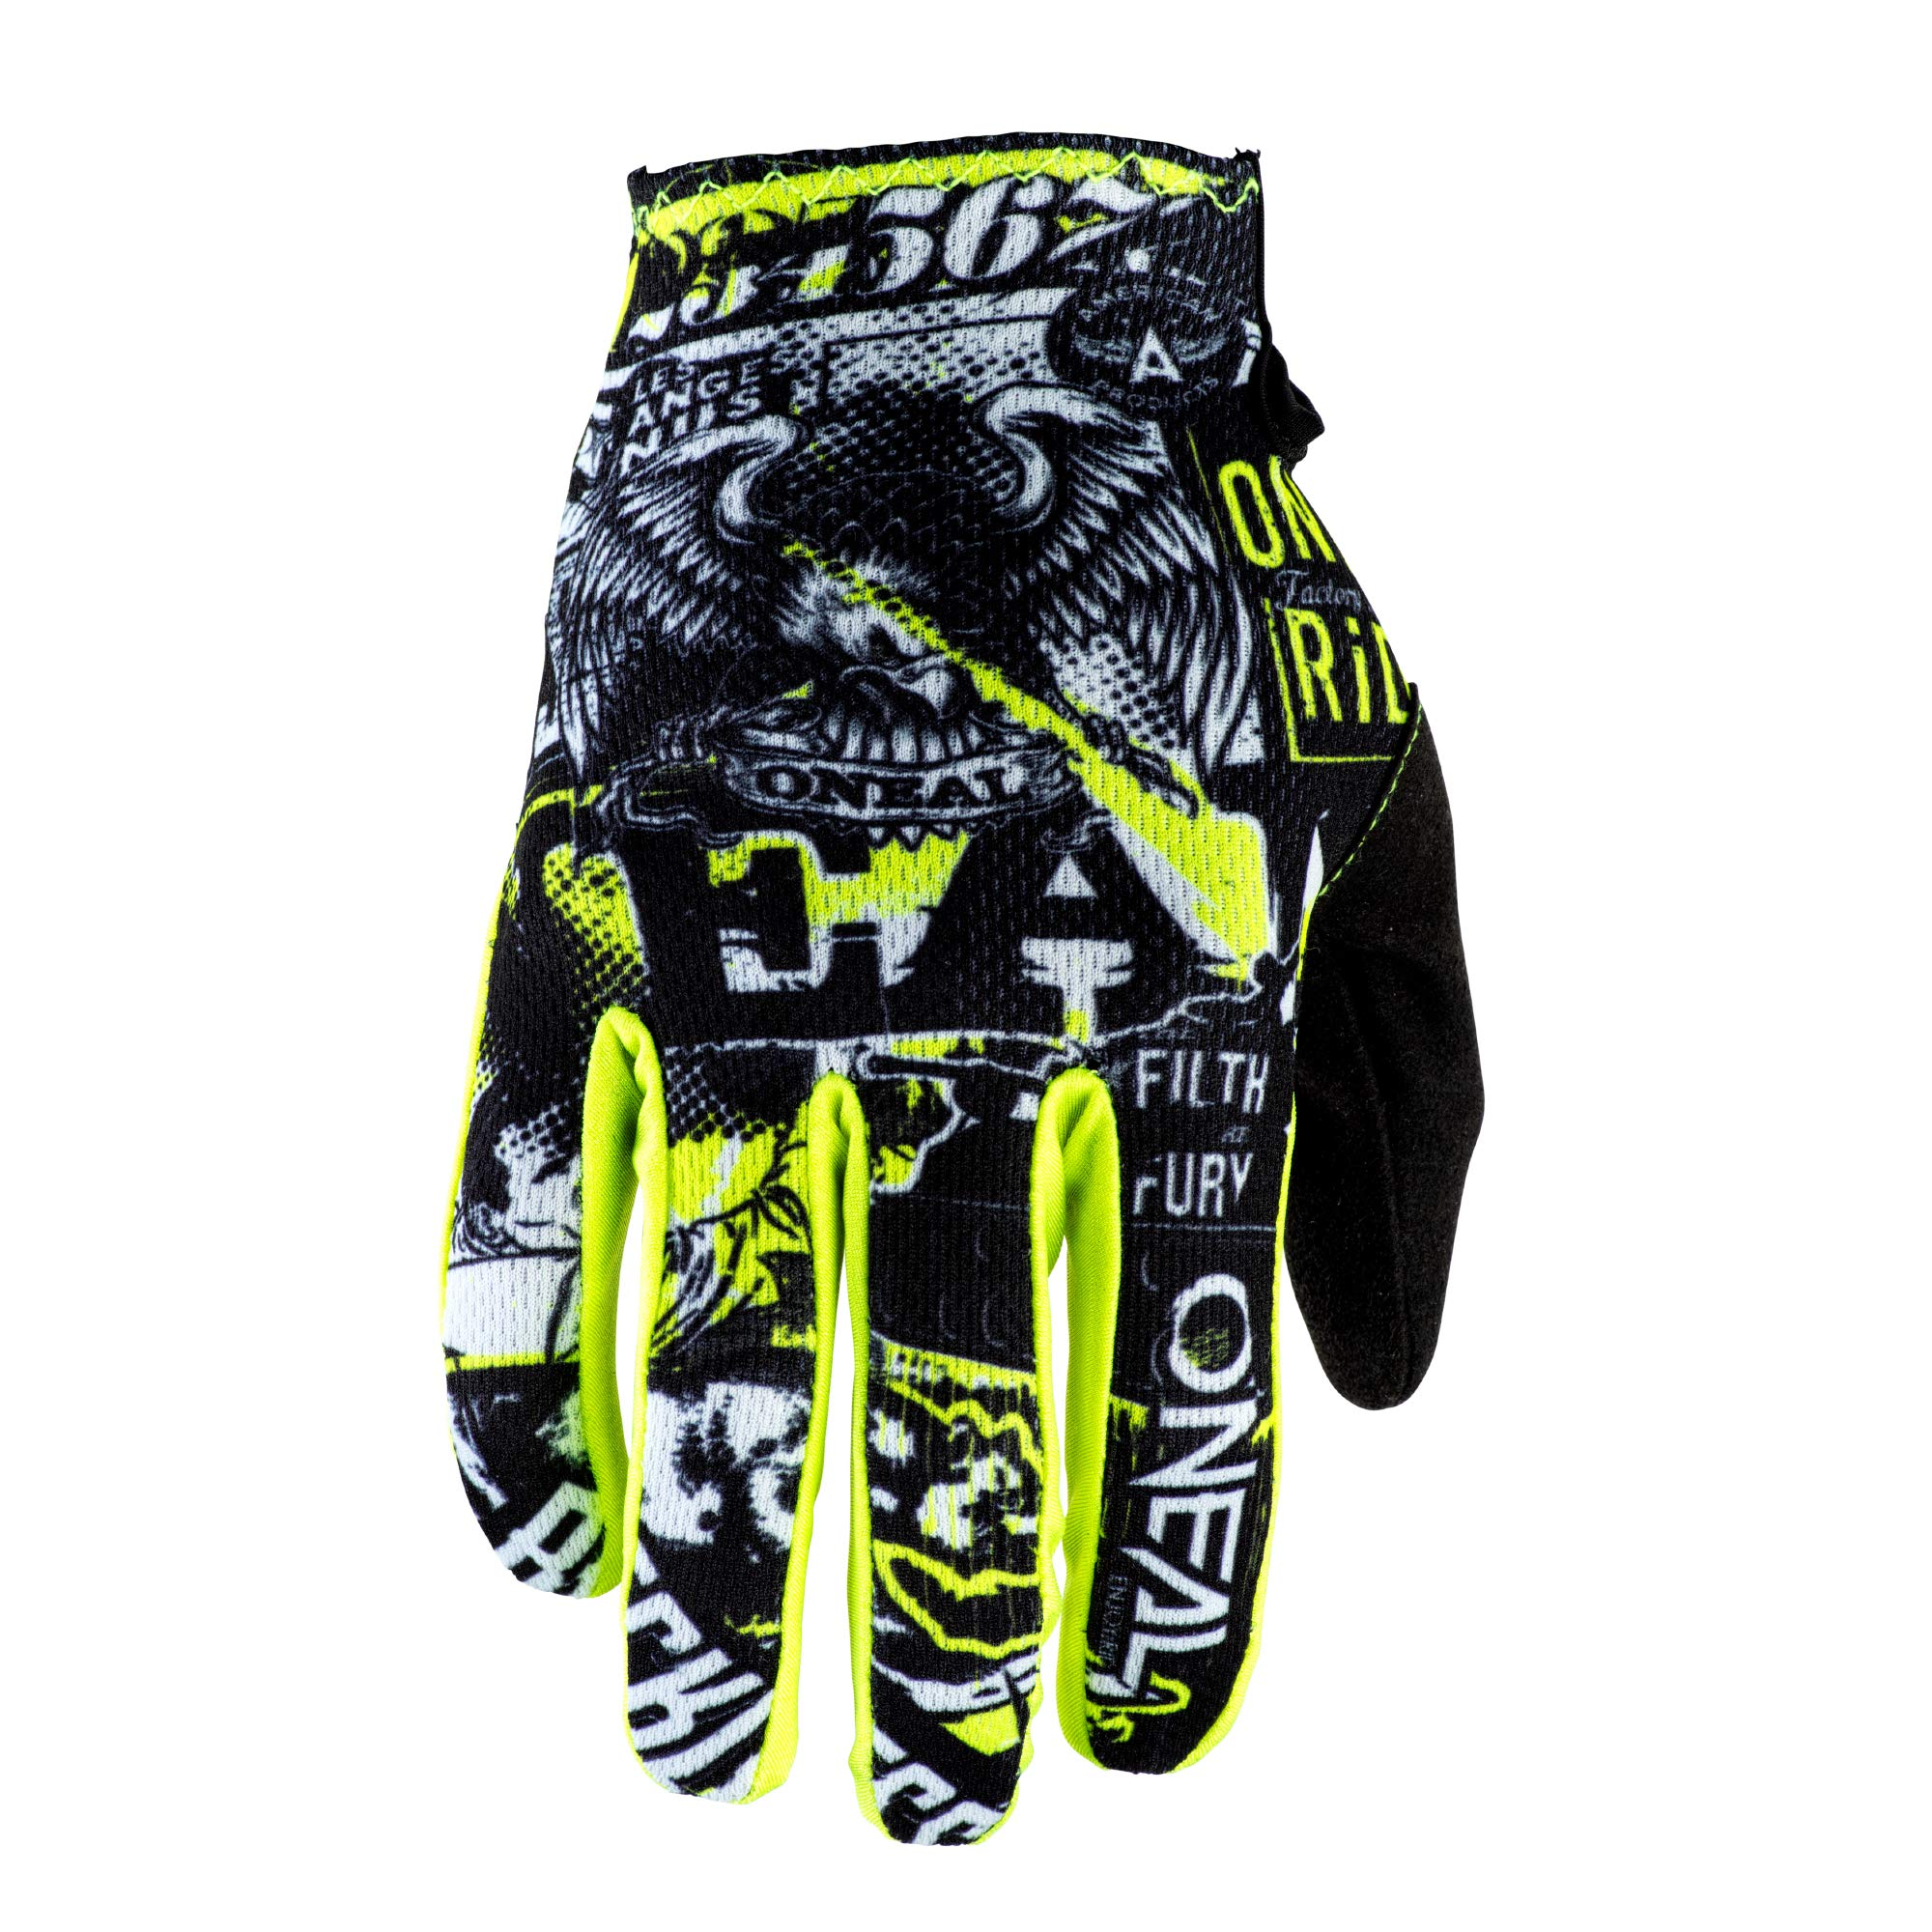 O'Neal - 0391-205 Matrix Unisex-Child Youth Glove (Black/neon/Yellow, 5 MED), 2 Pack